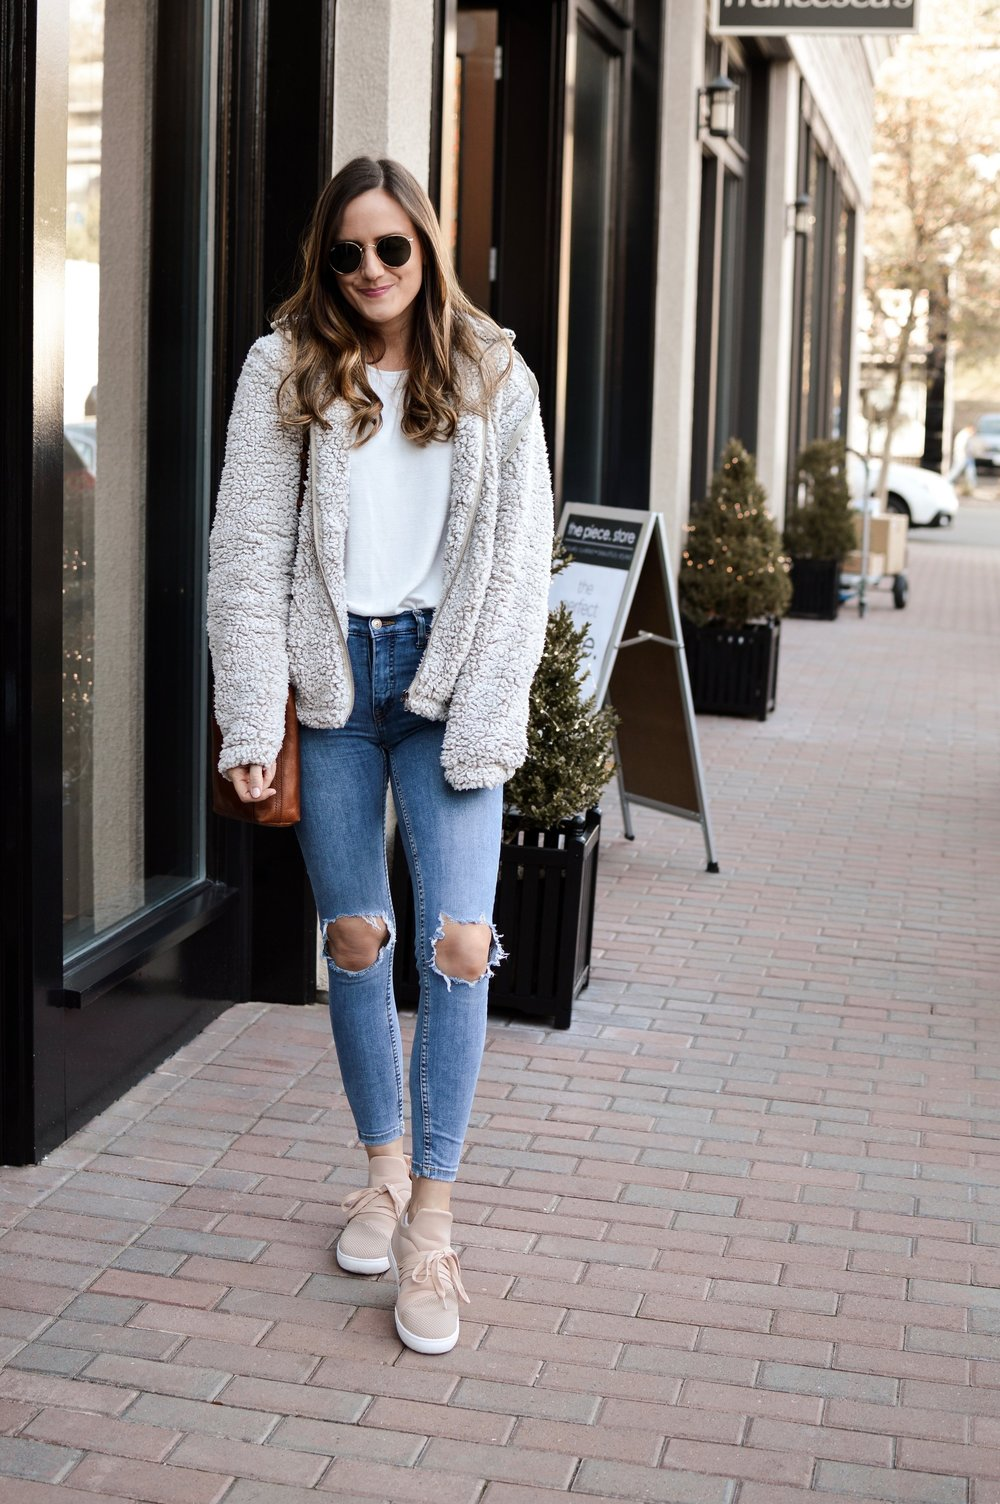 Shop the Look Below.  Thread & Supply Jacket  |  Steve Madden Sneakers  |  Ray-Ban Sunglasses  |  Madewell Tote